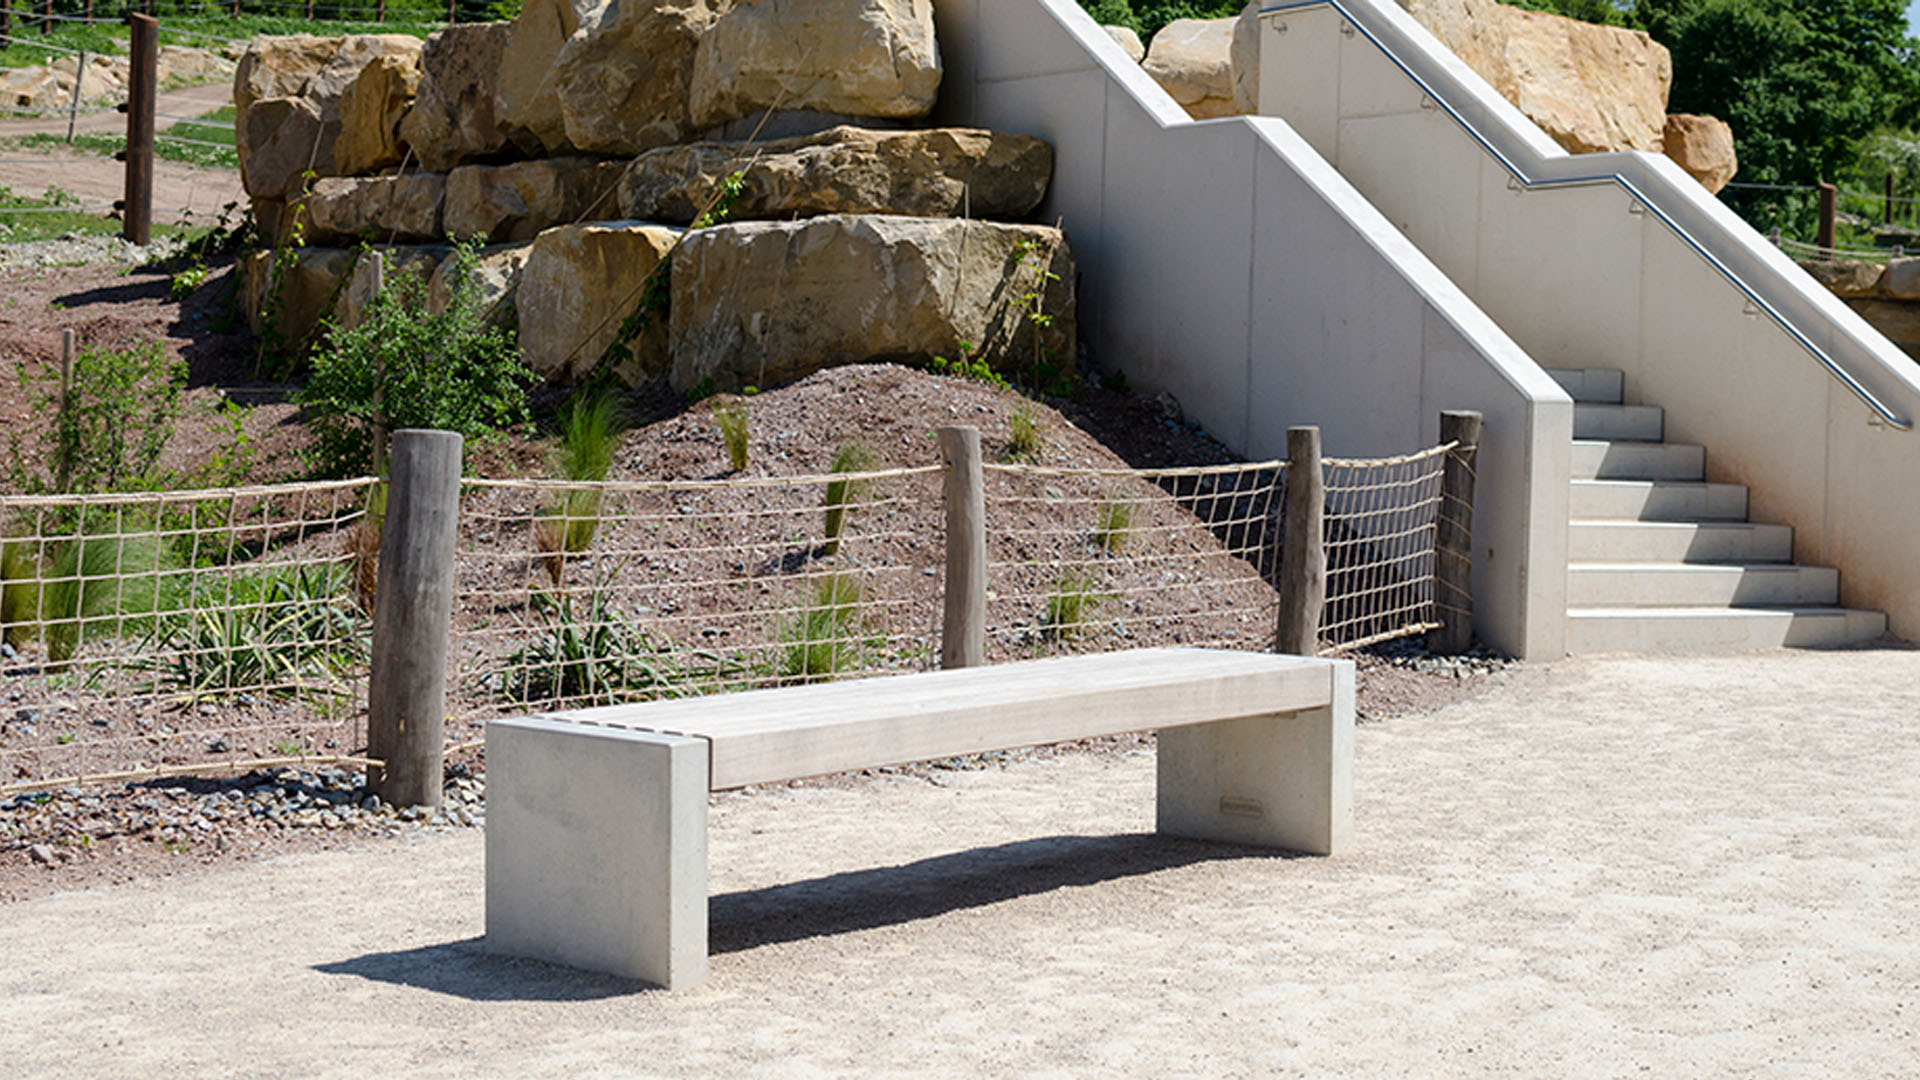 Weila Concrete Bench Seating Location image 1920x1080px